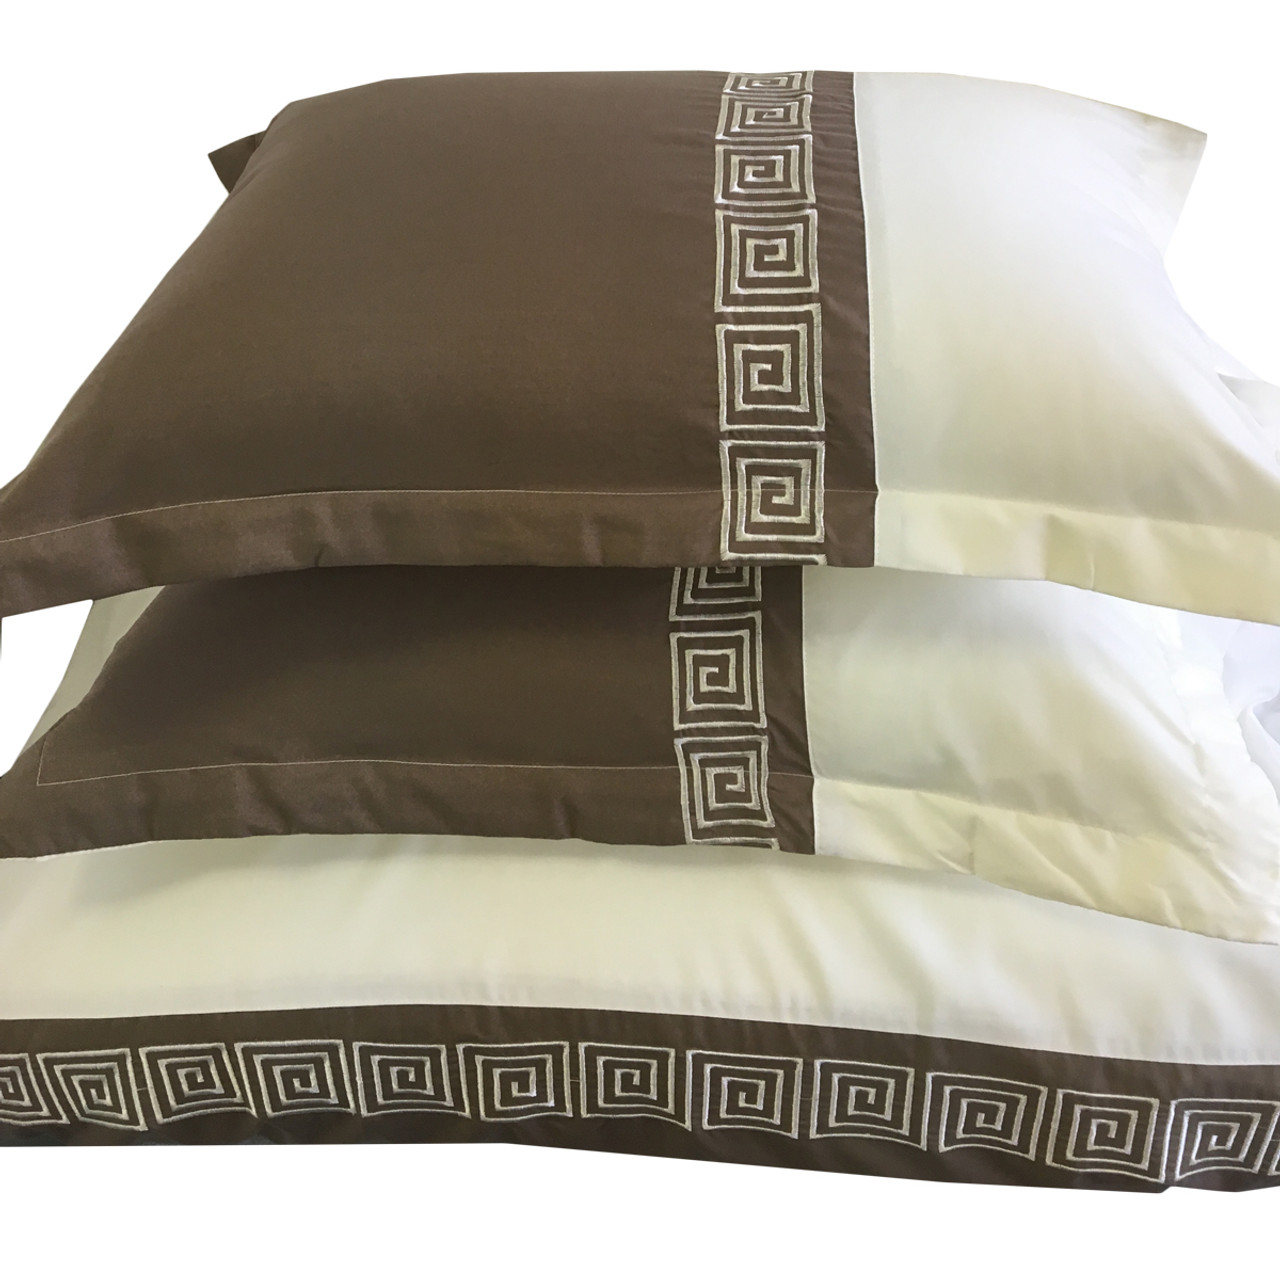 souq cotton covers co cottongeometric geometric size duvet saudi en from sa product king cover arabia donetella beige pattern price